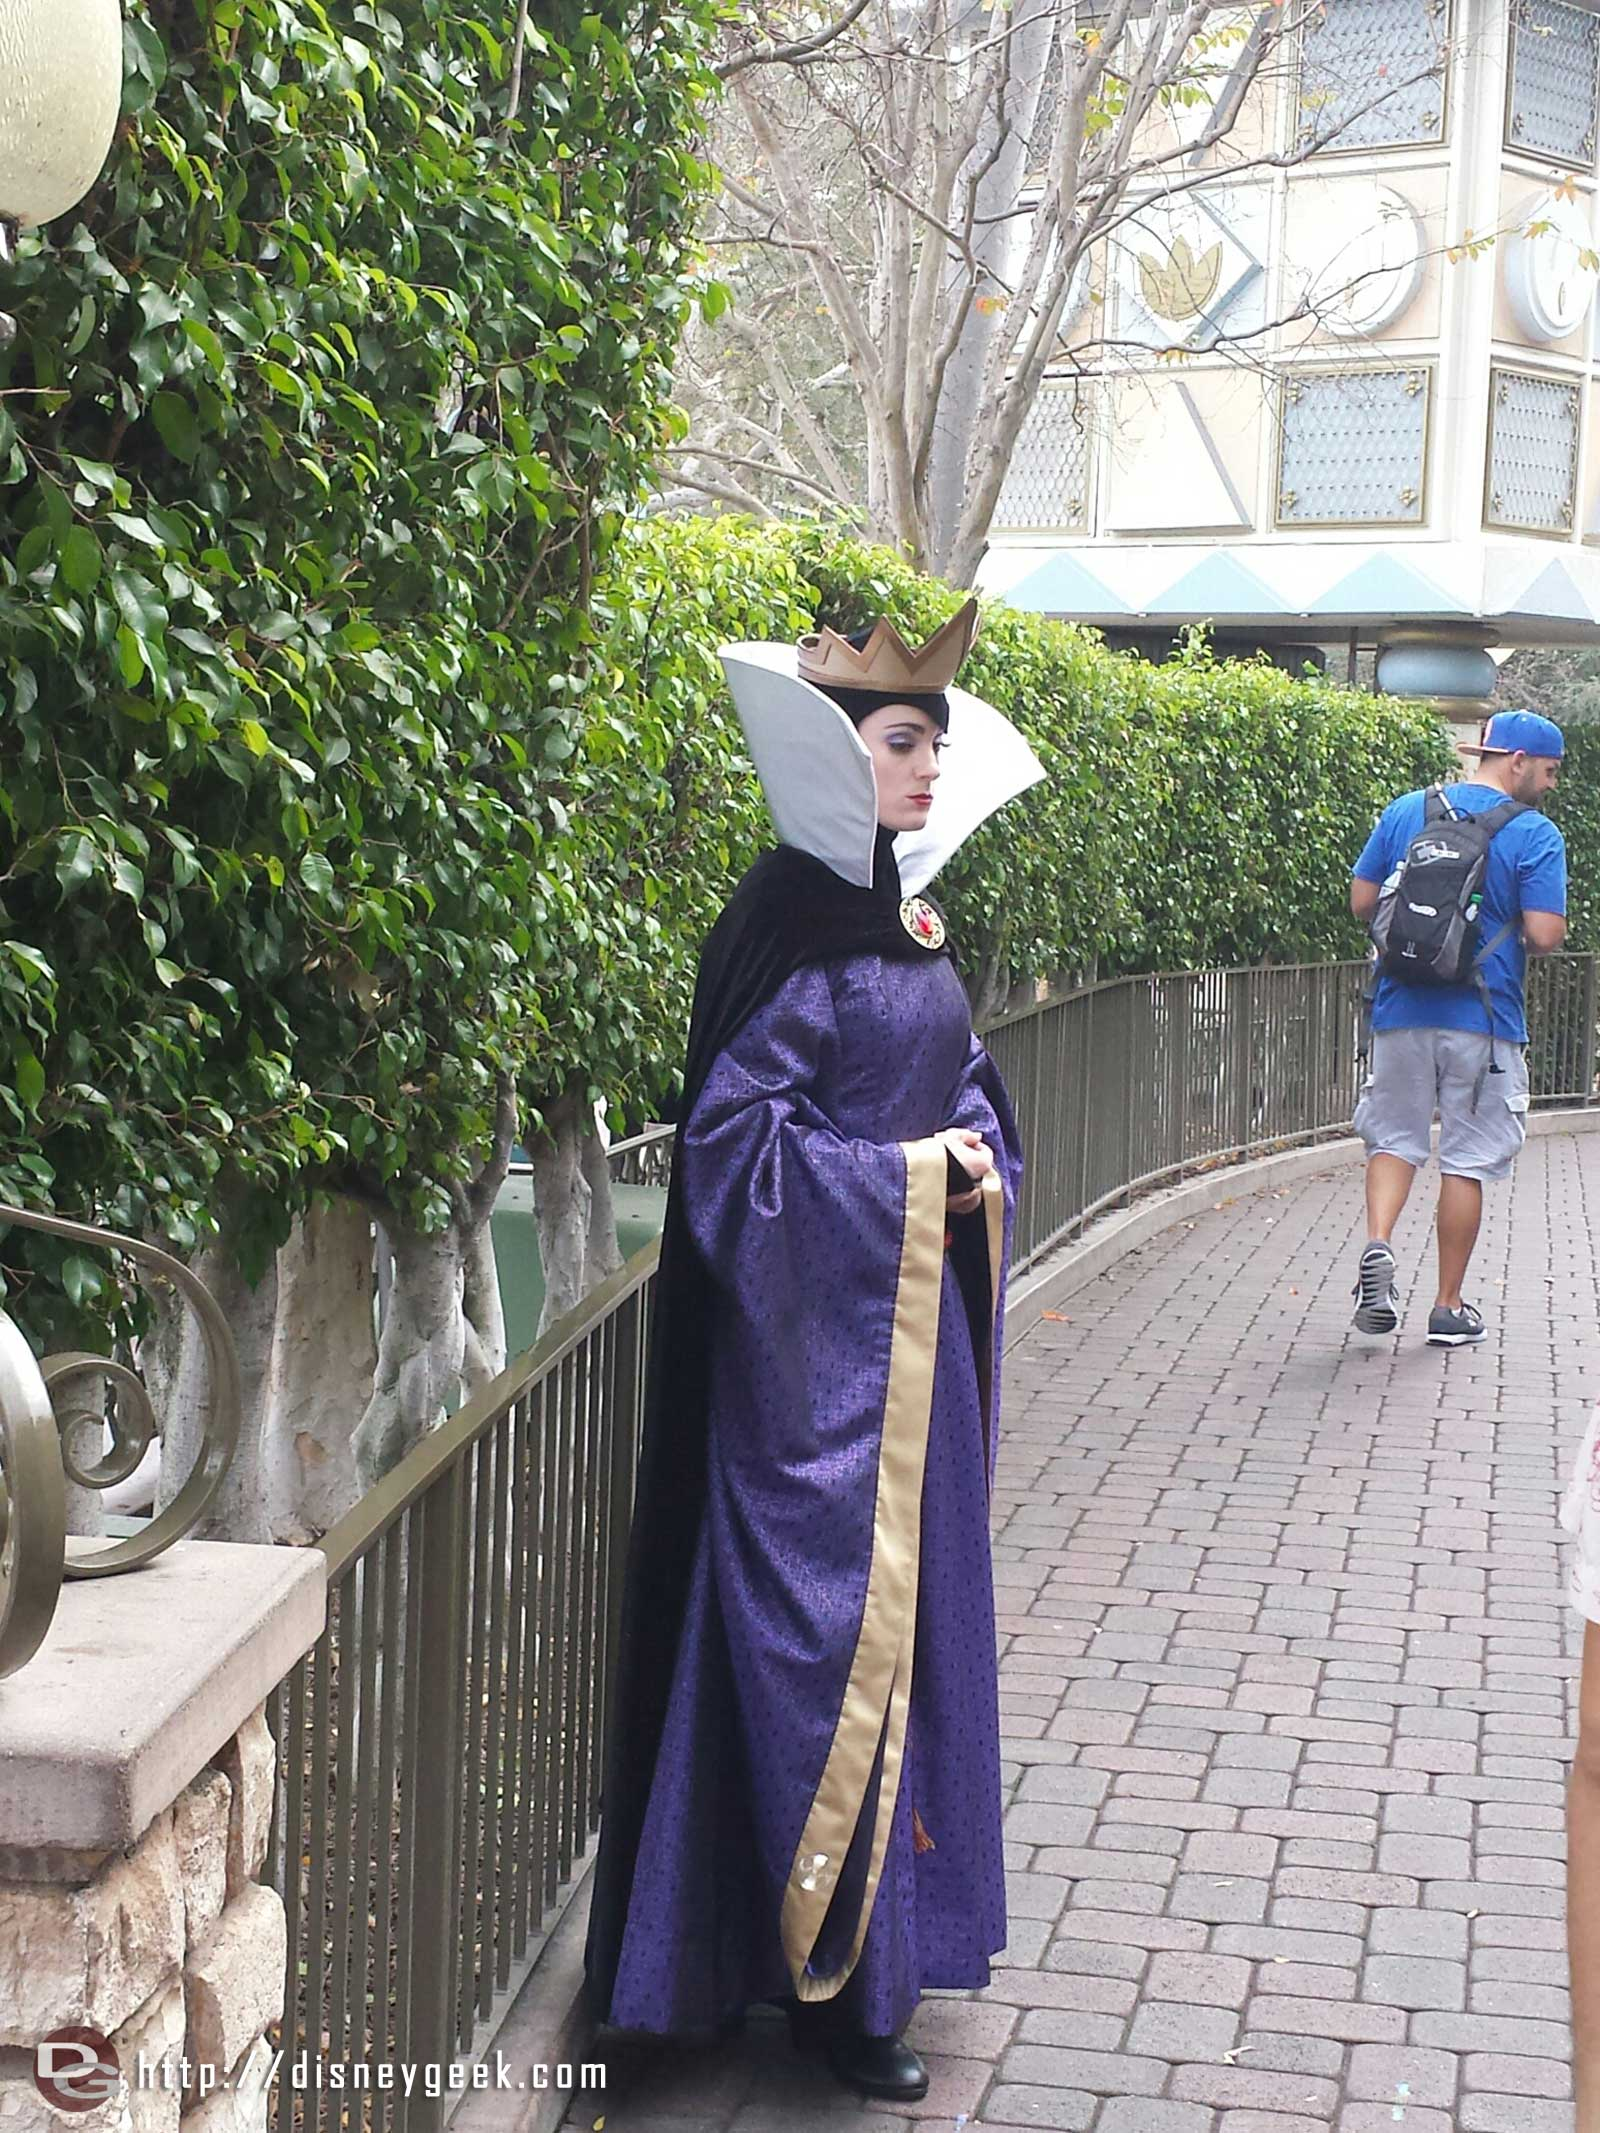 The Evil Queen is out greeting guests in the Small World Mall area #Disneyland